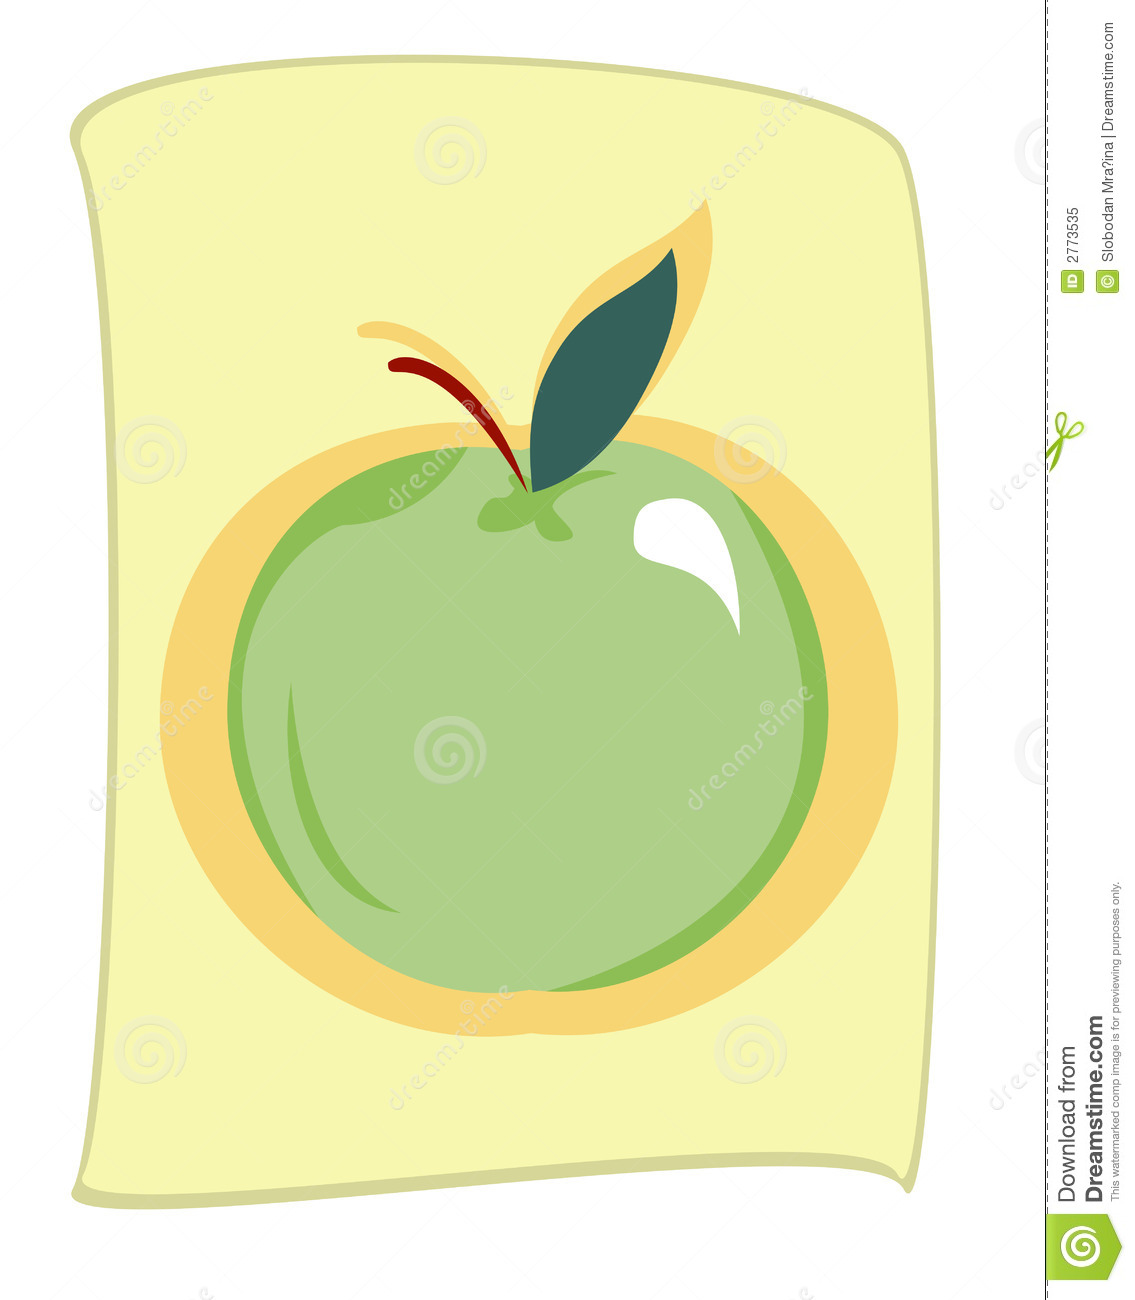 delicious green apple illustration - photo #48